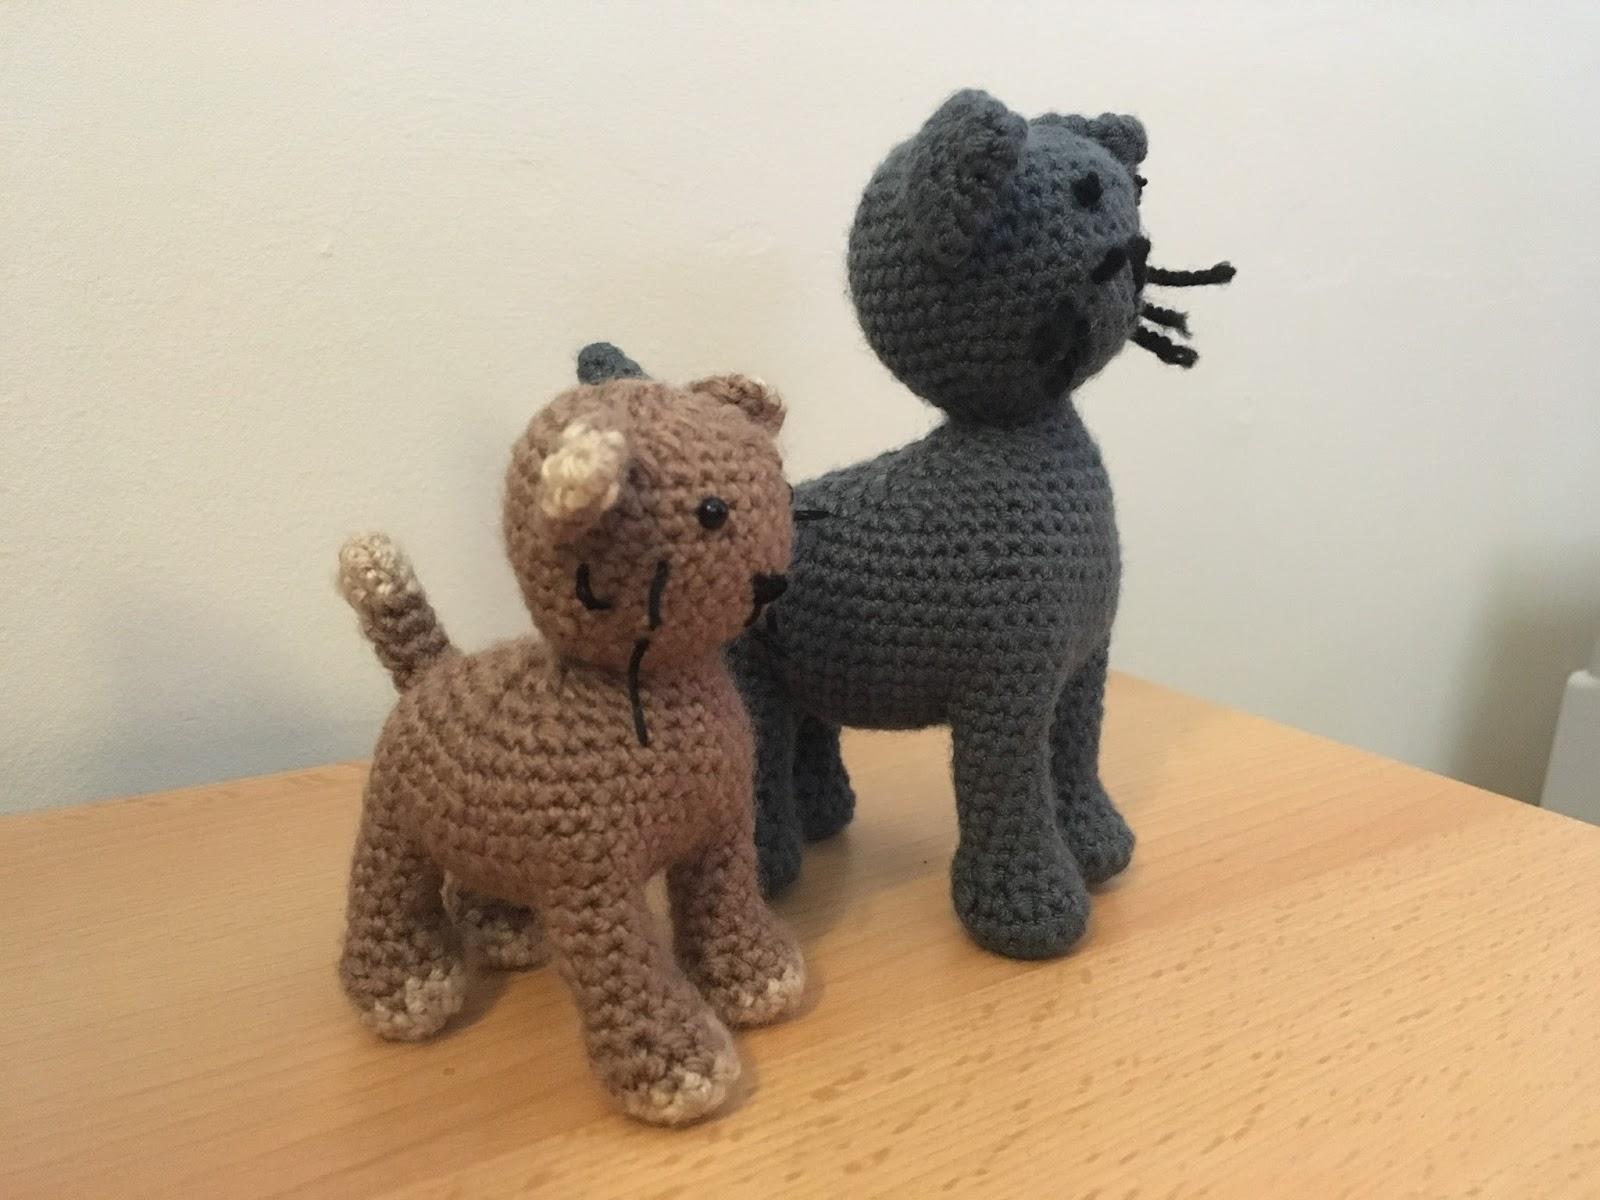 Amigurumi One Piece Patrones : Crochet... Amigurumi : One piece cat